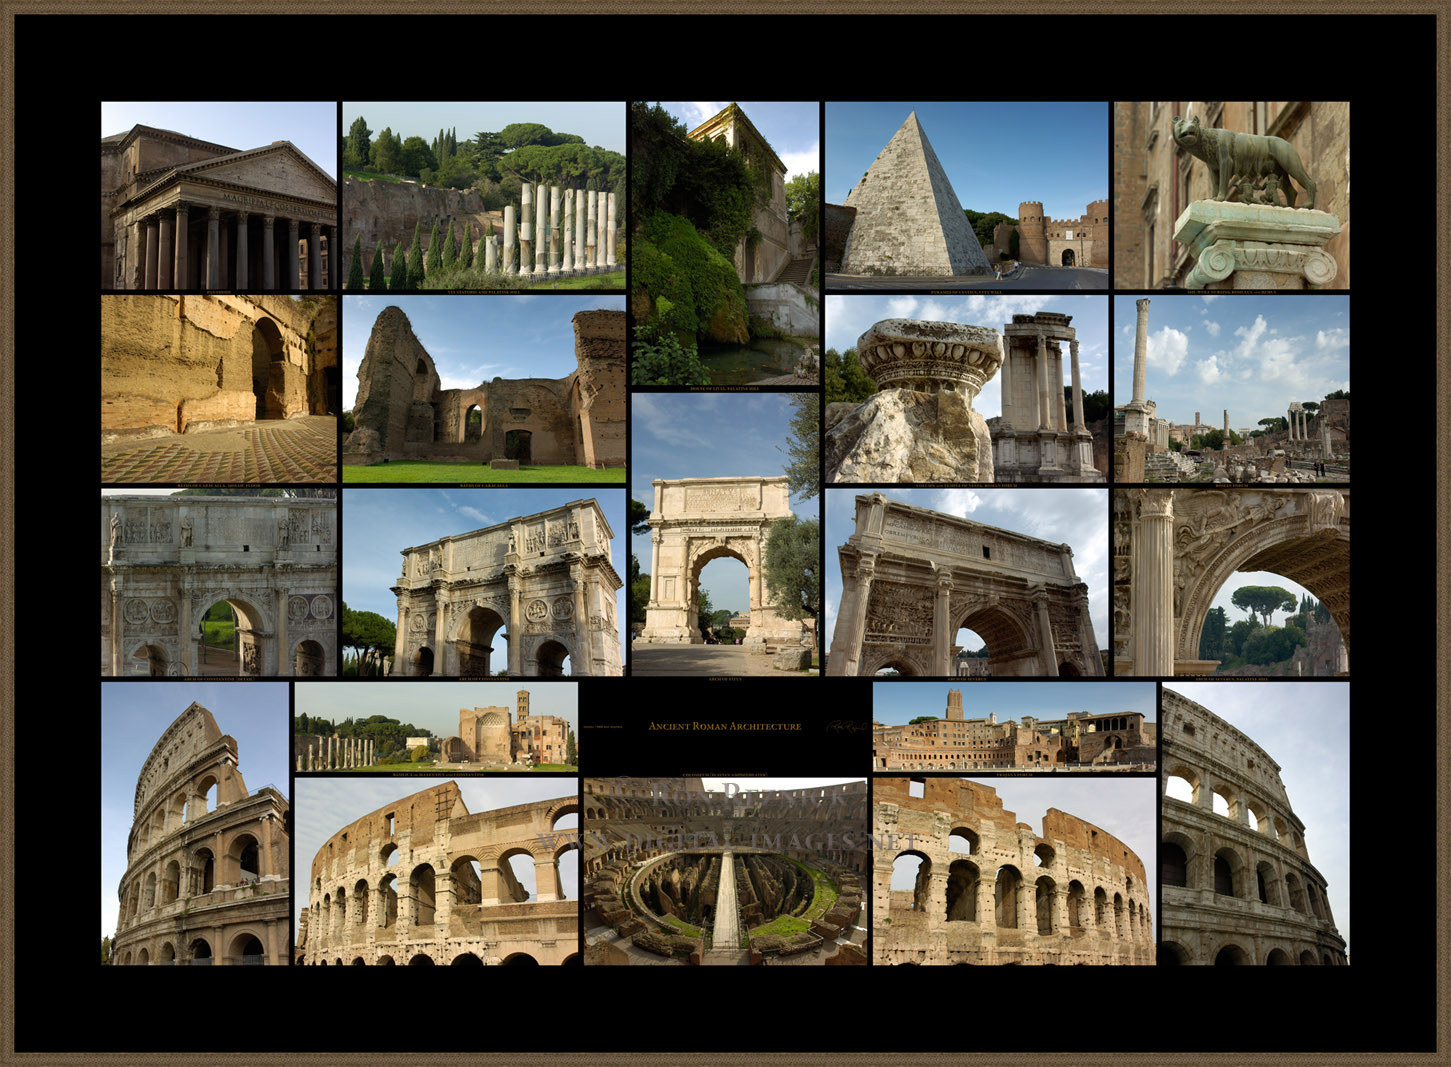 art and architecture in ancient rome - photo#2